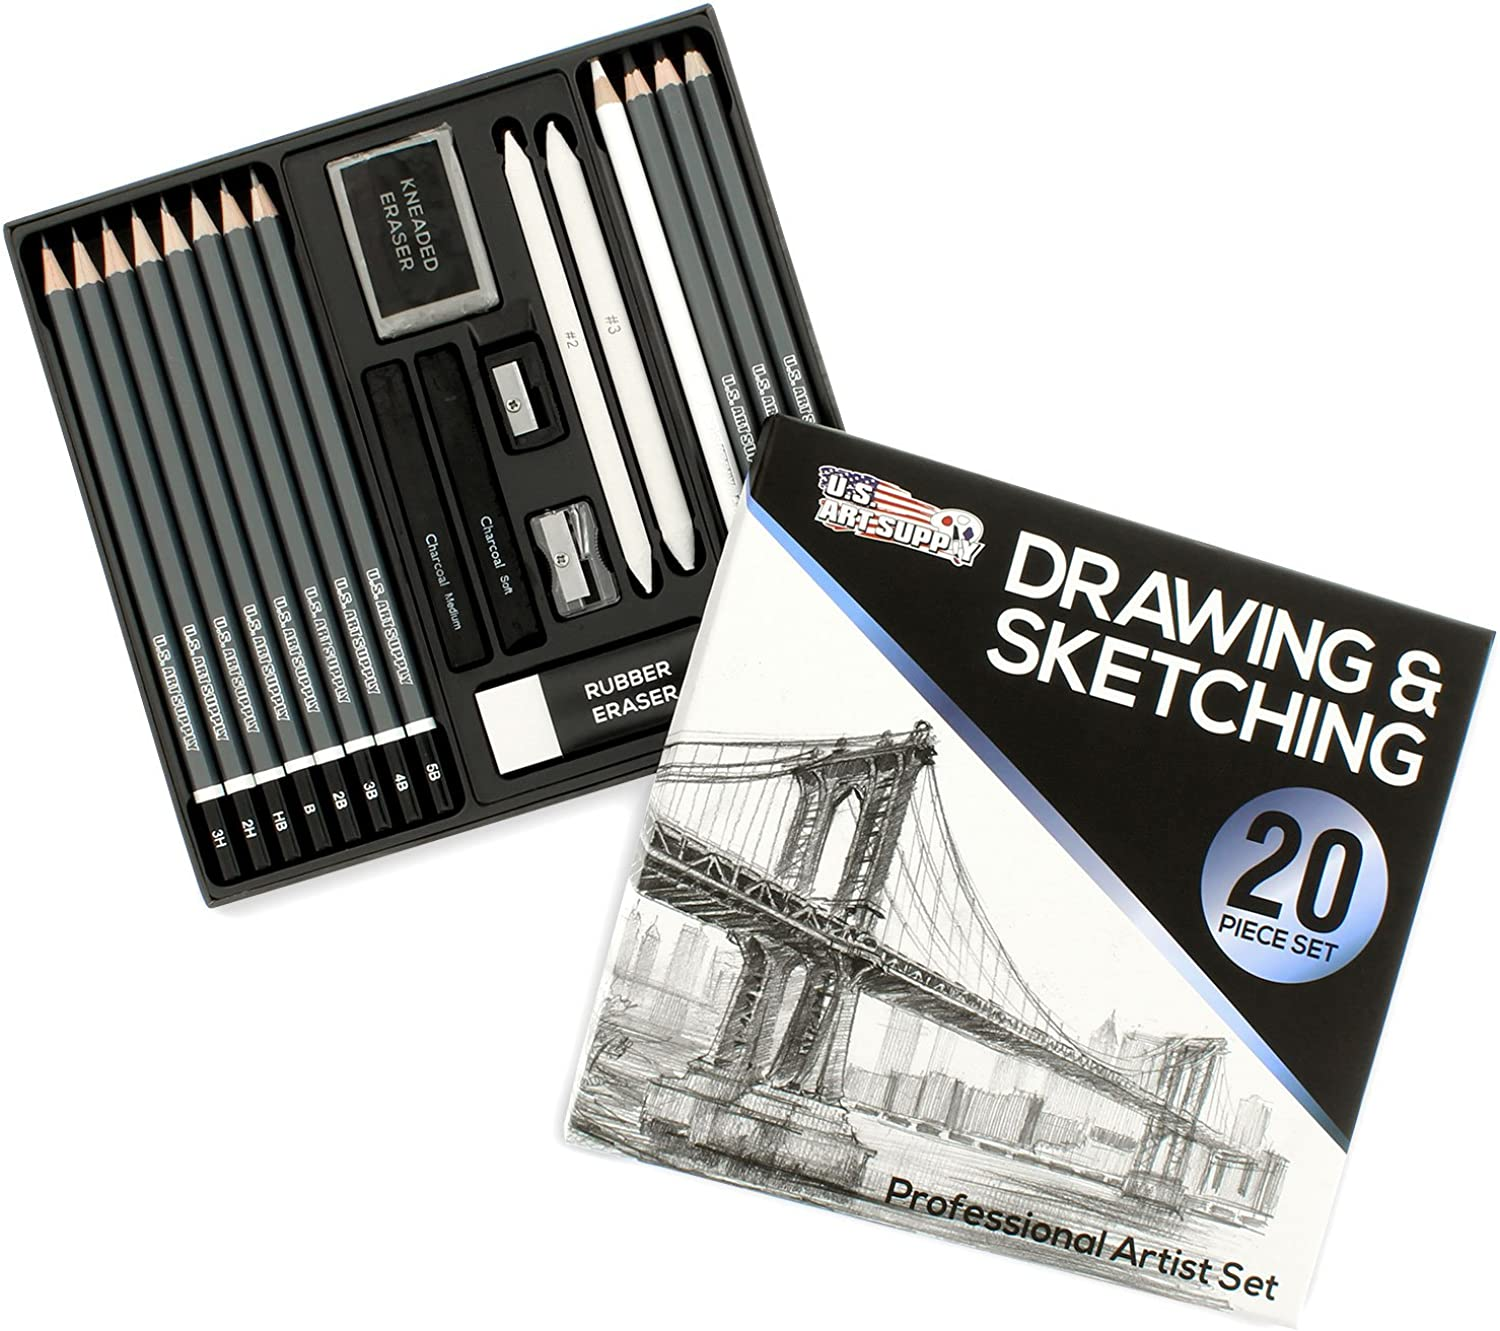 US US US Art Supply Brand 36 Count Professional Hi-Quality Artist ColGoldt Pencil Set with 12 WaterFarbe, 8 Graphite, 12 ColGoldt & 4 Woodless Pencils. Great for Drawing Manga Art and works with all Drawing Media. Now Includes a FREE Reusable Plastic Carry Case e2239d